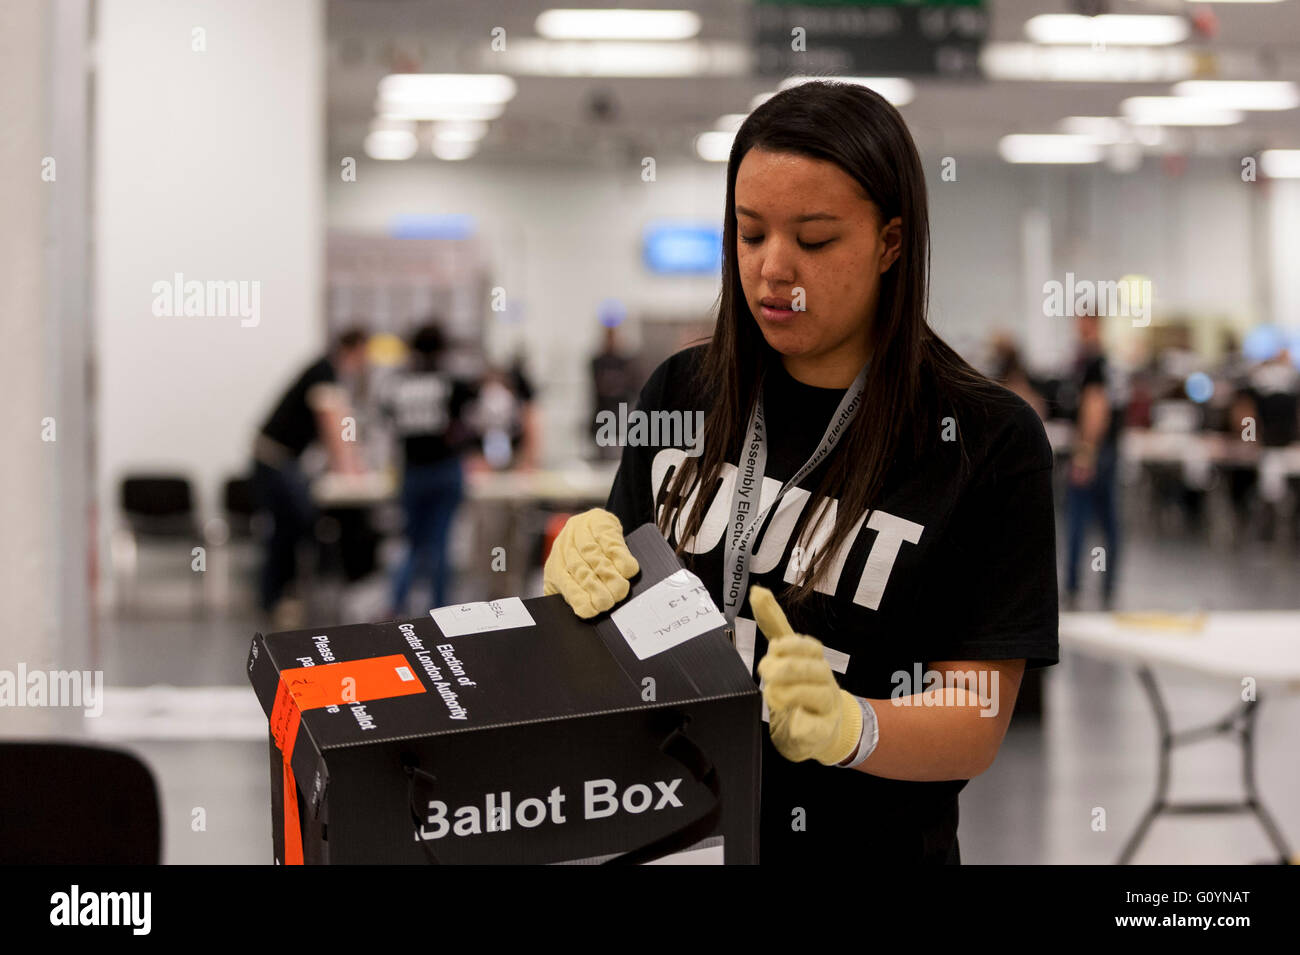 London, UK.  6 May 2016. A counter opens a ballot box for processing. Votes for the London Mayoral elections and - Stock Image